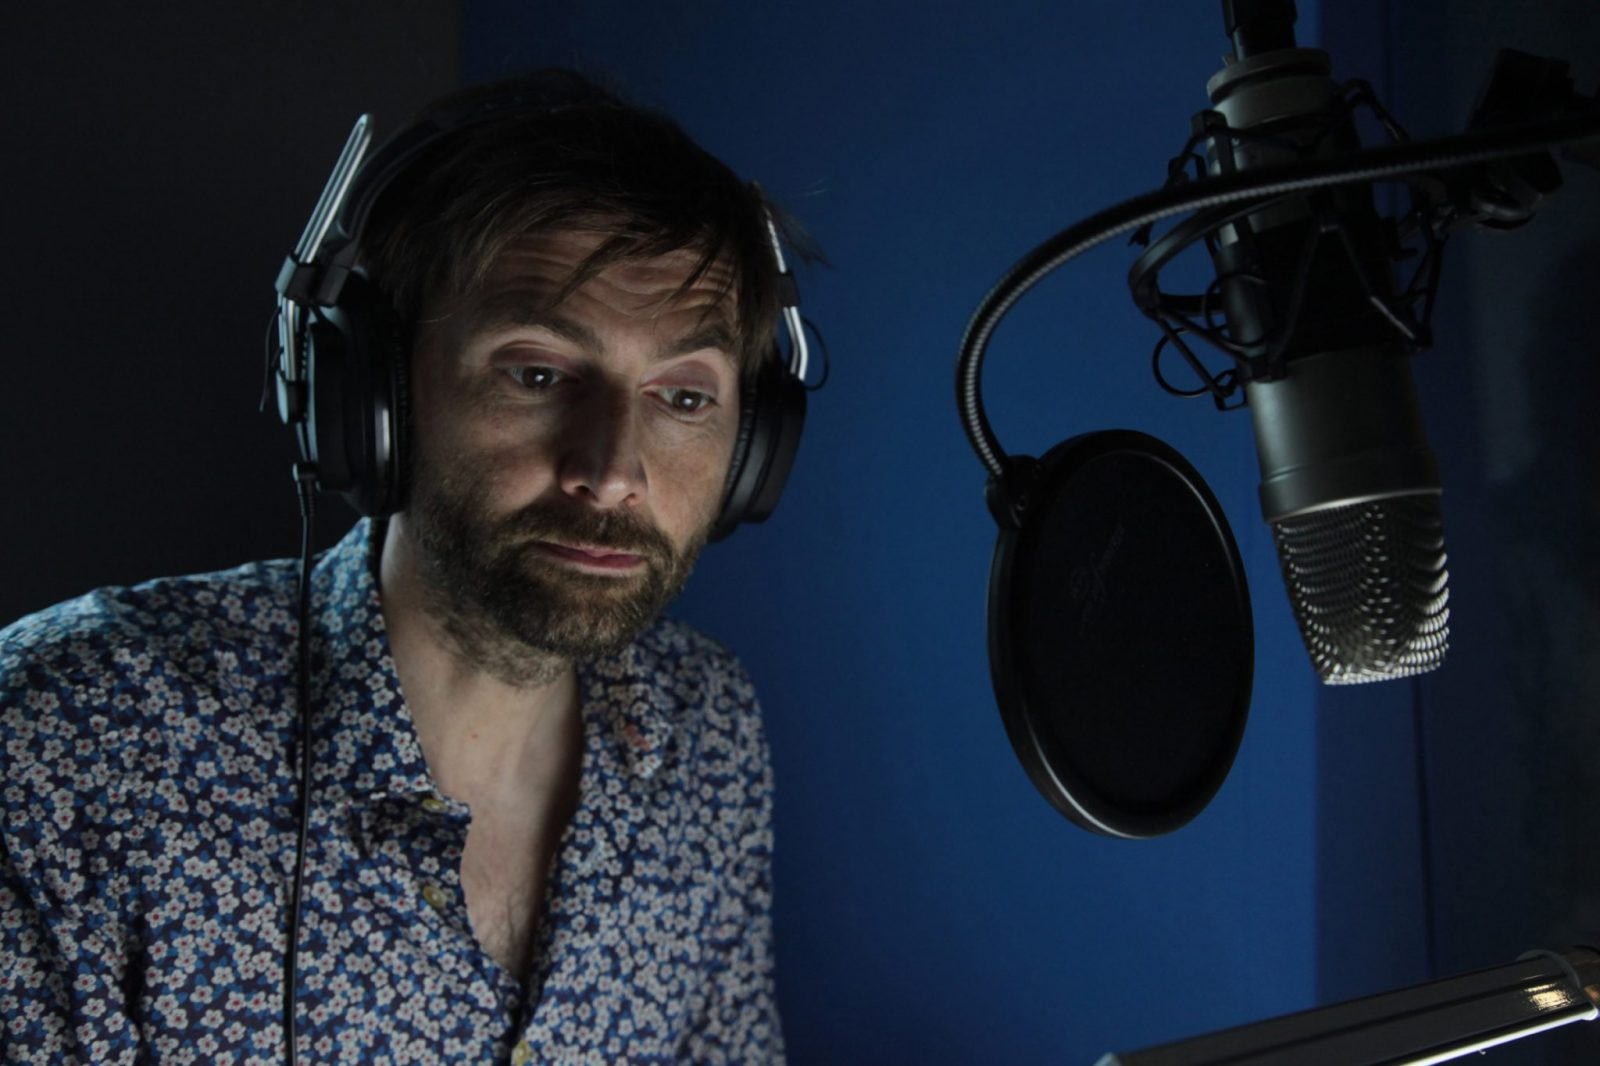 David Tennant features in the first films for cats and dogs that have been scientifically developed to reduce stress caused by fireworks. The free films have been created by MORE TH>N Pet Insurance and can be viewed here: www.youtube.com/morethan This picture: David Tennant is pictured in a recording studio providing narration for the stress-busting films for cats and dogs. Each part of David's script, including specific words, cadence, intensity, volume and pitch were designed to aid relaxation among cats and dogs.